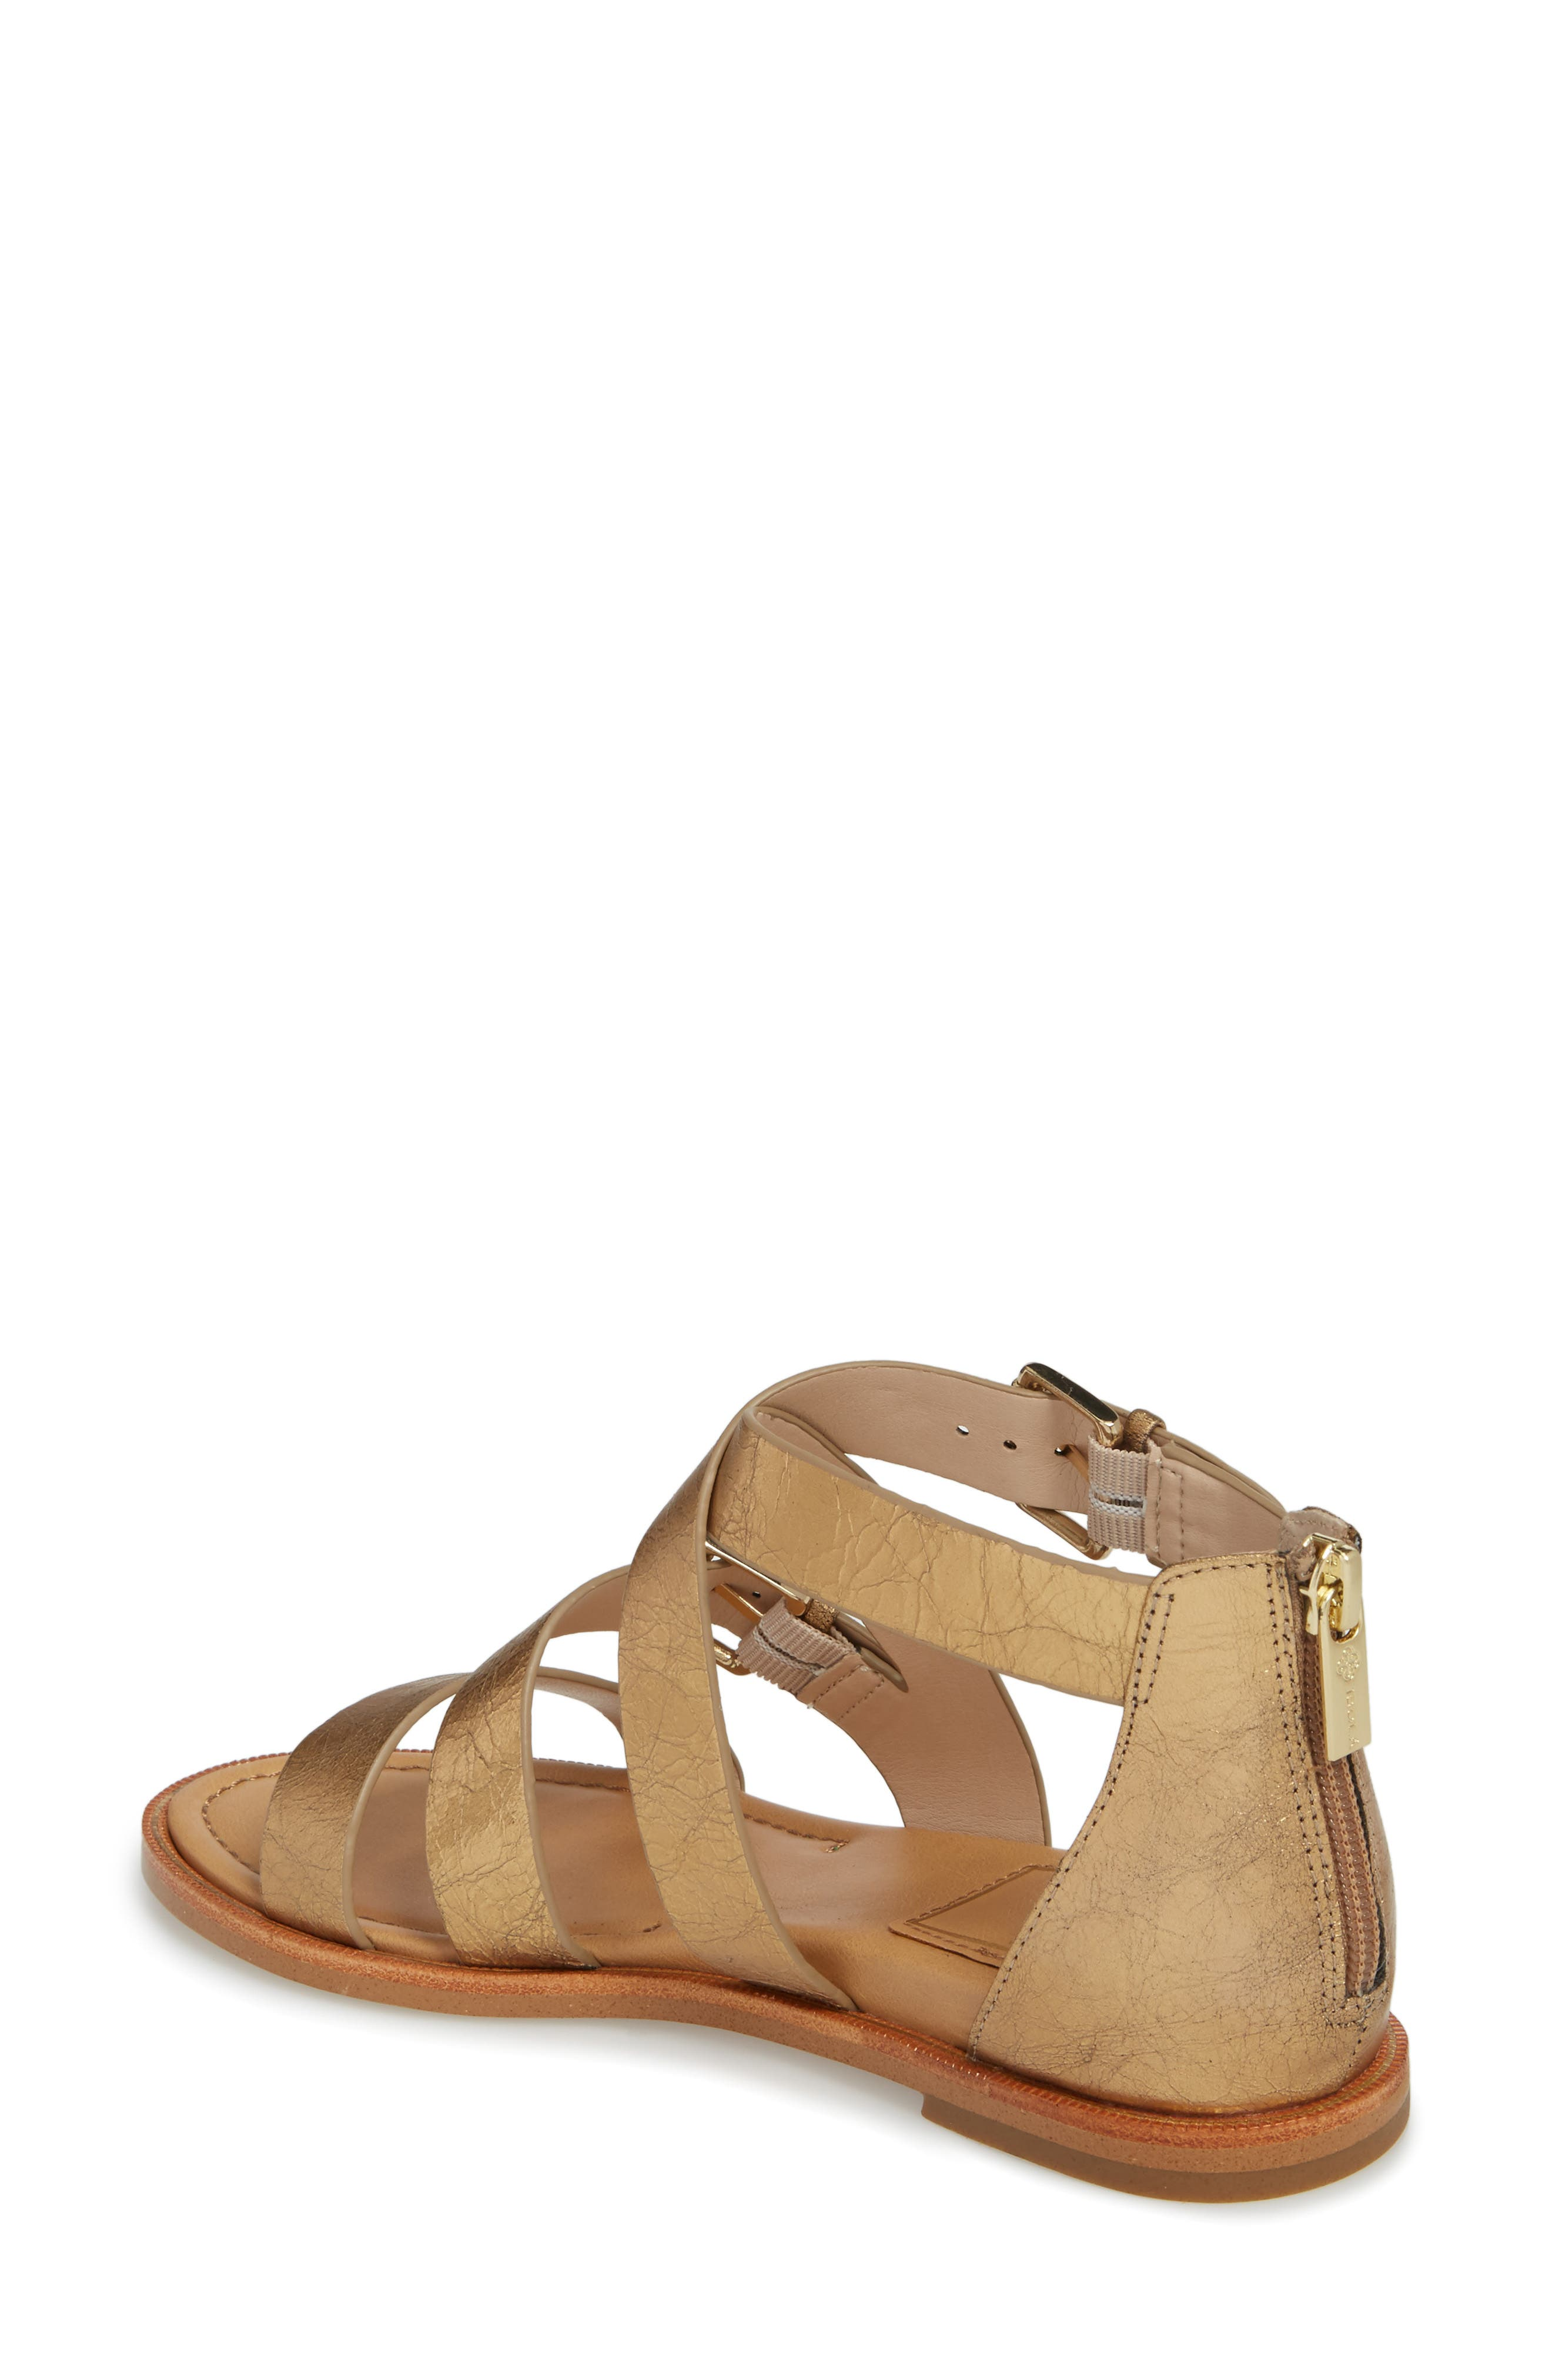 Isola Sharni Sandal,                             Alternate thumbnail 2, color,                             Old Gold Leather